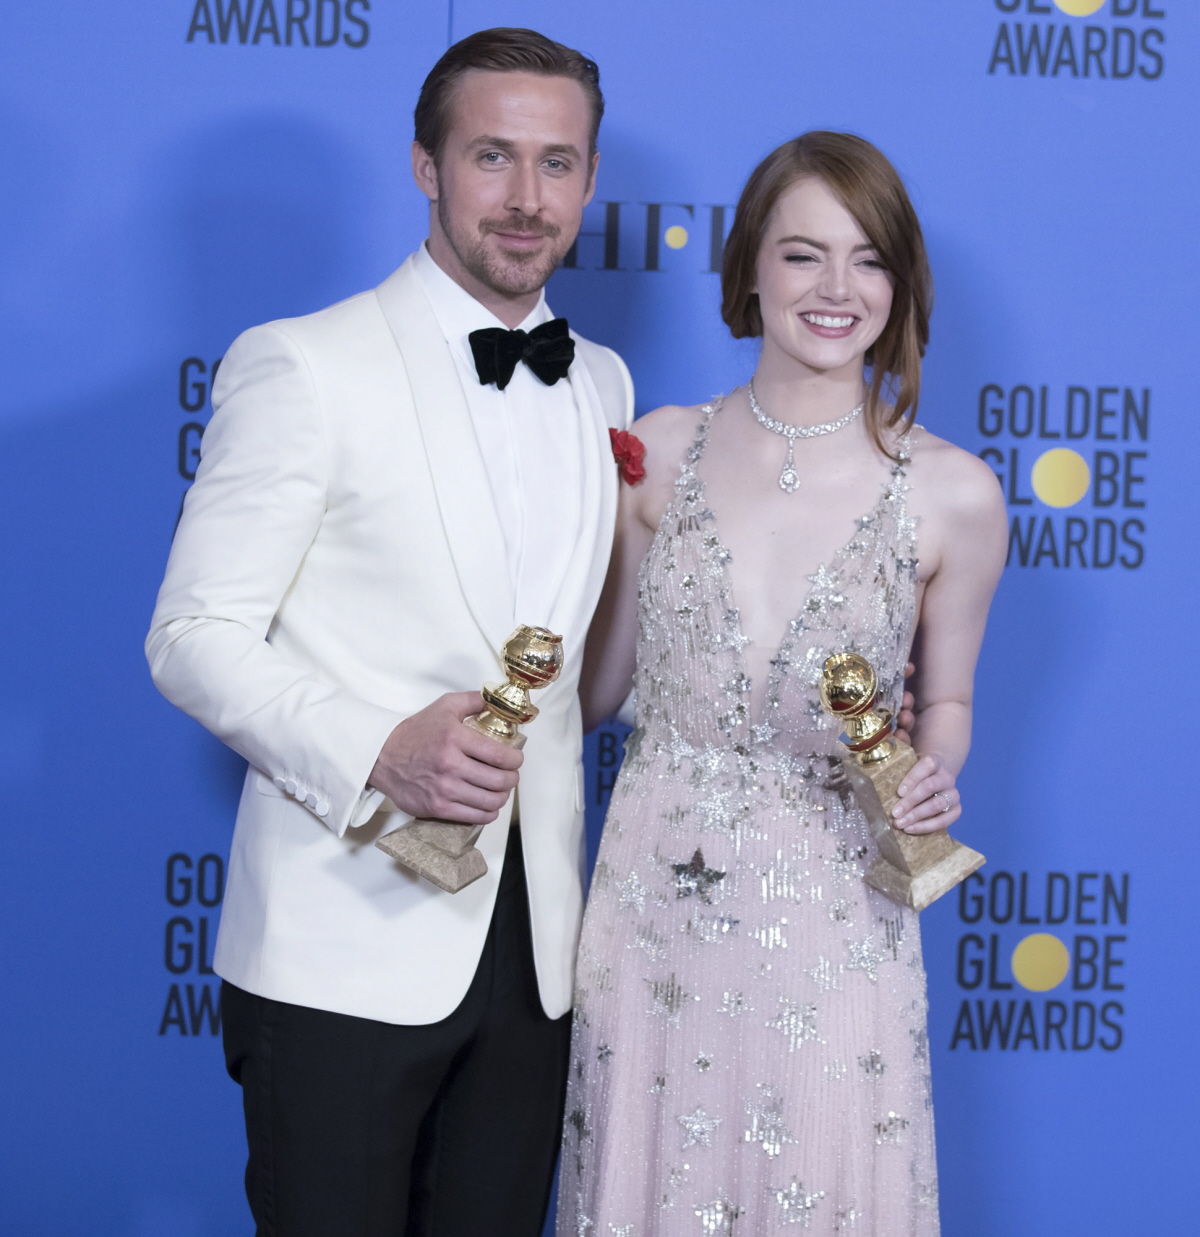 FFN_CHP_Golden_Globes_Press_Room_010817_52276890  bitchy | Emma Stone in star-covered Valentino on the Golden Globes: twee or candy? FFN CHP Golden Globes Press Room 010817 52276890